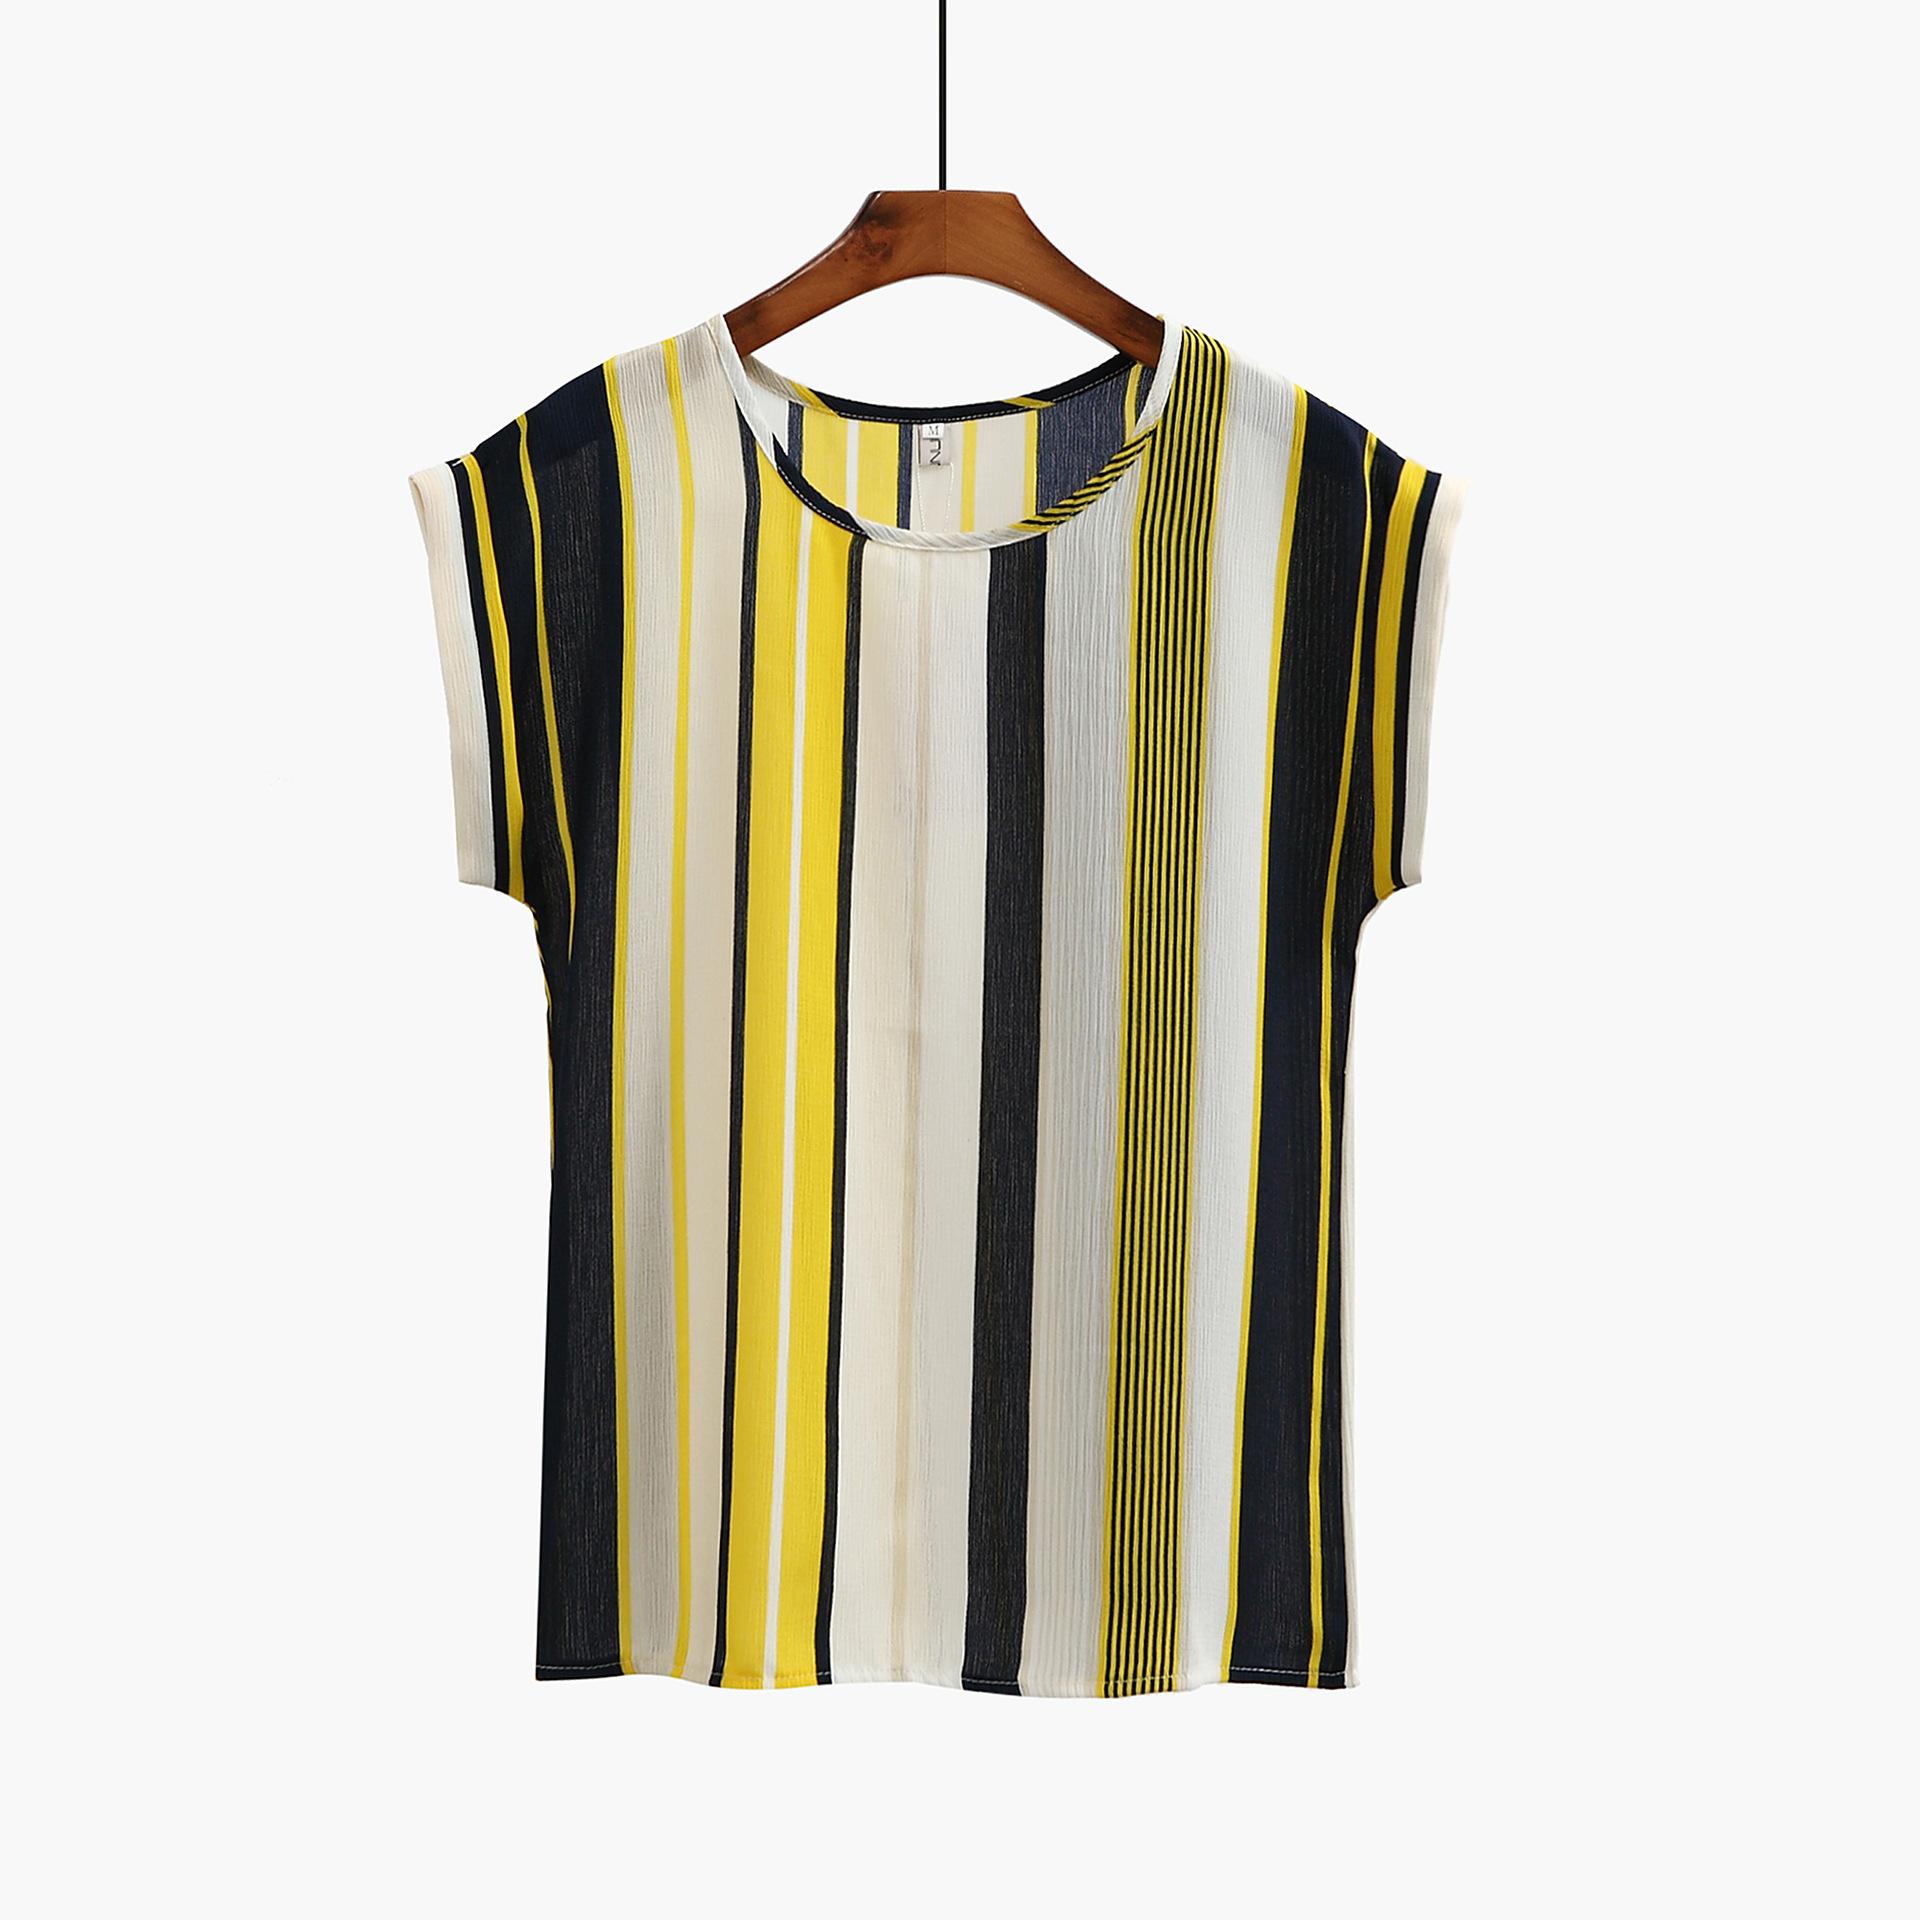 New Spring Summer Women's Blouse Office Ladies Slim Tops Short Sleeve Print Chiffon Shirts Striped Casual Blouses Blusas Mujer